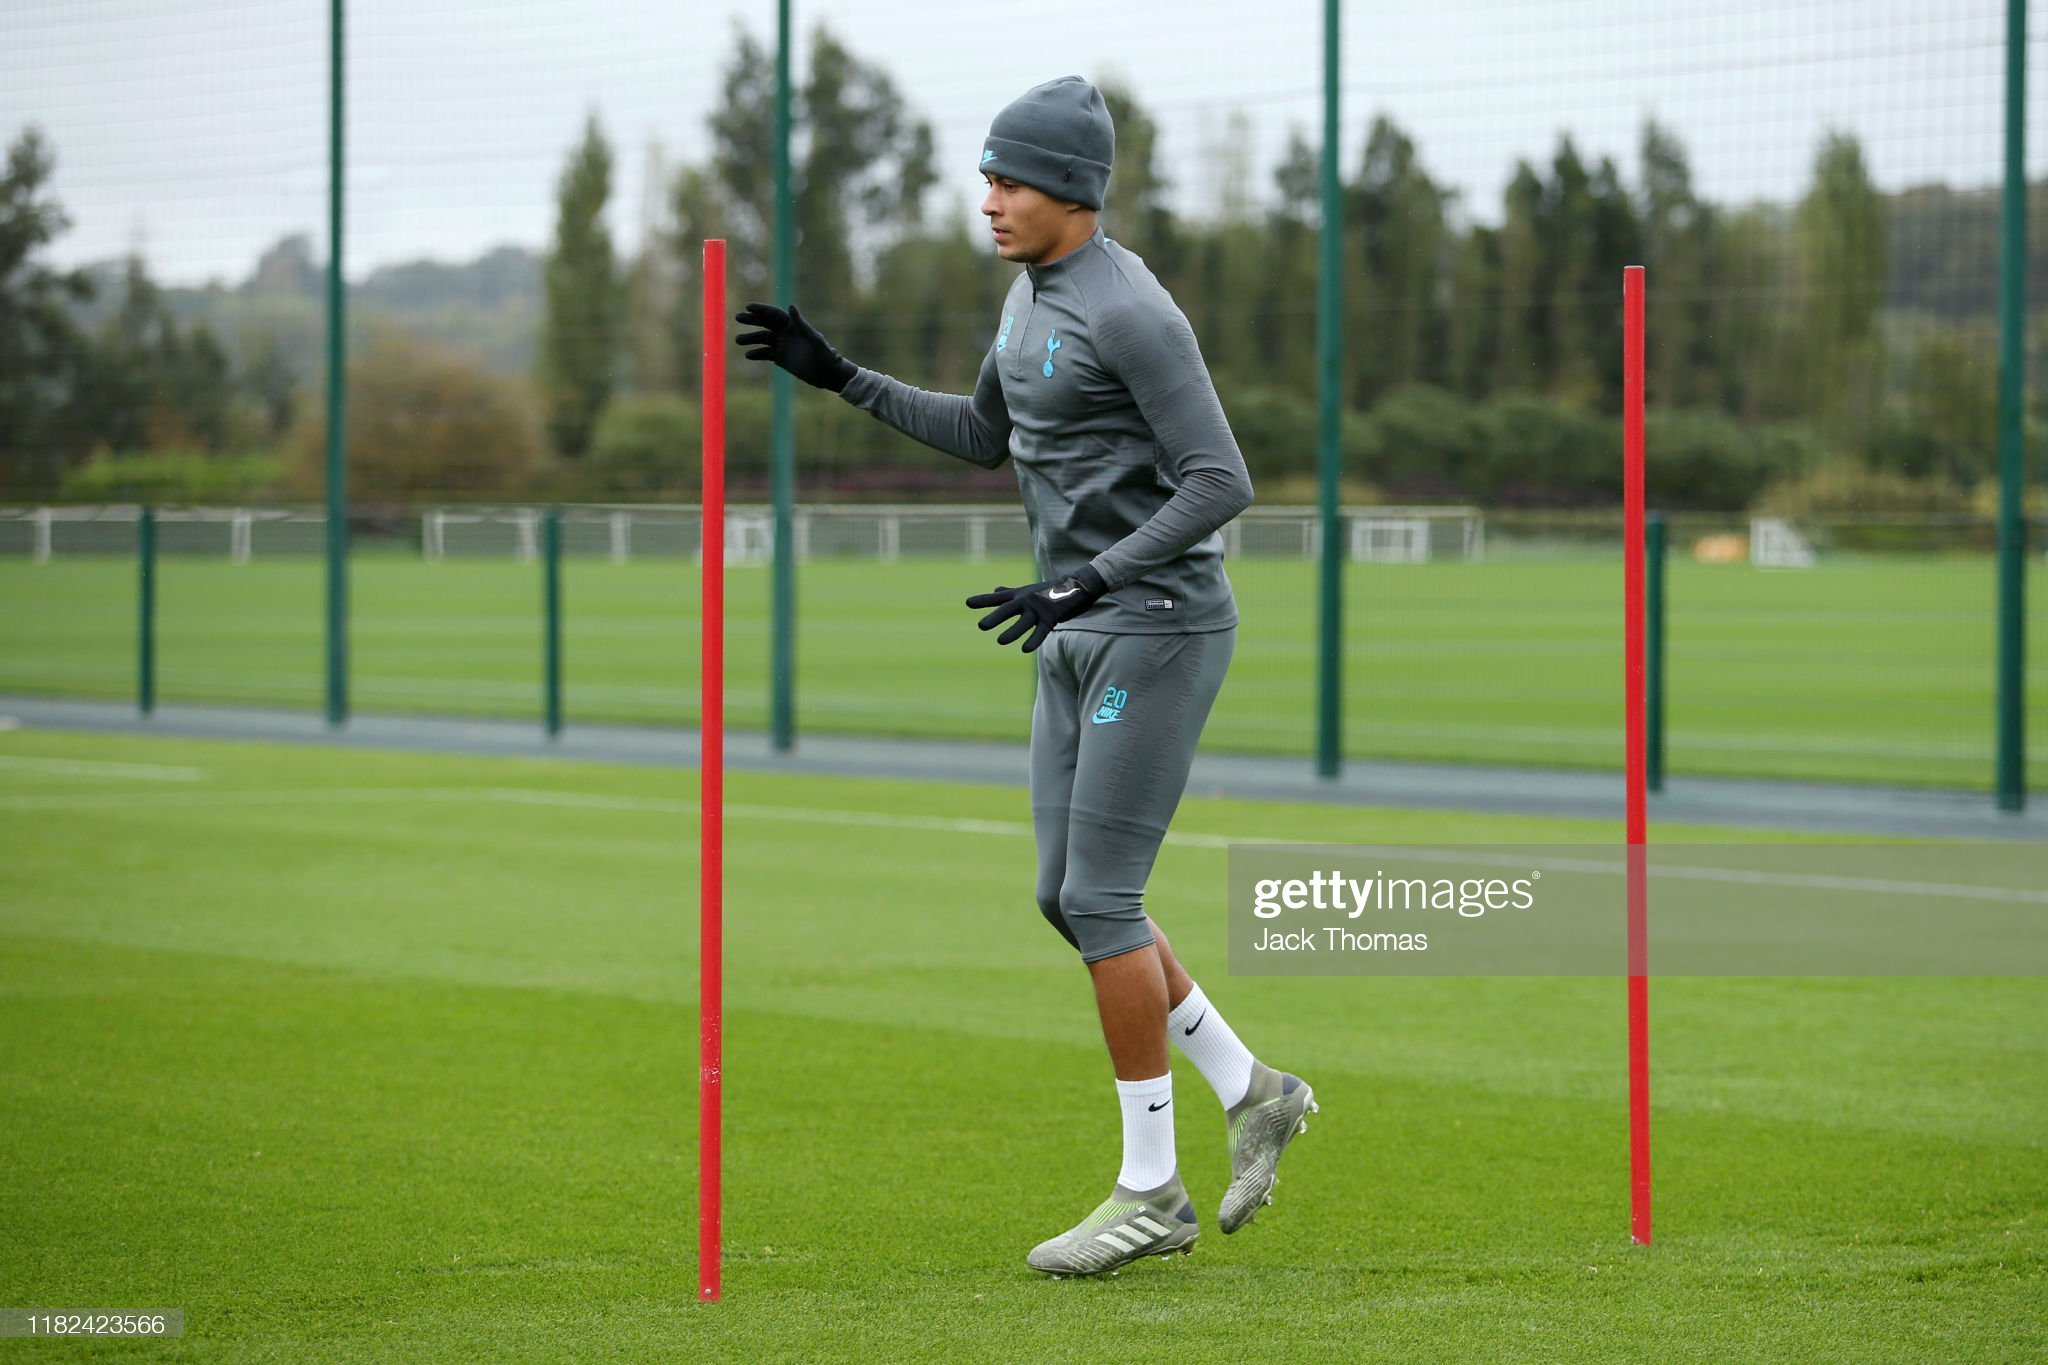 dele-alli-of-tottenham-hotspur-takes-part-in-a-training-session-ahead-picture-id1182423566?s=2048x2048